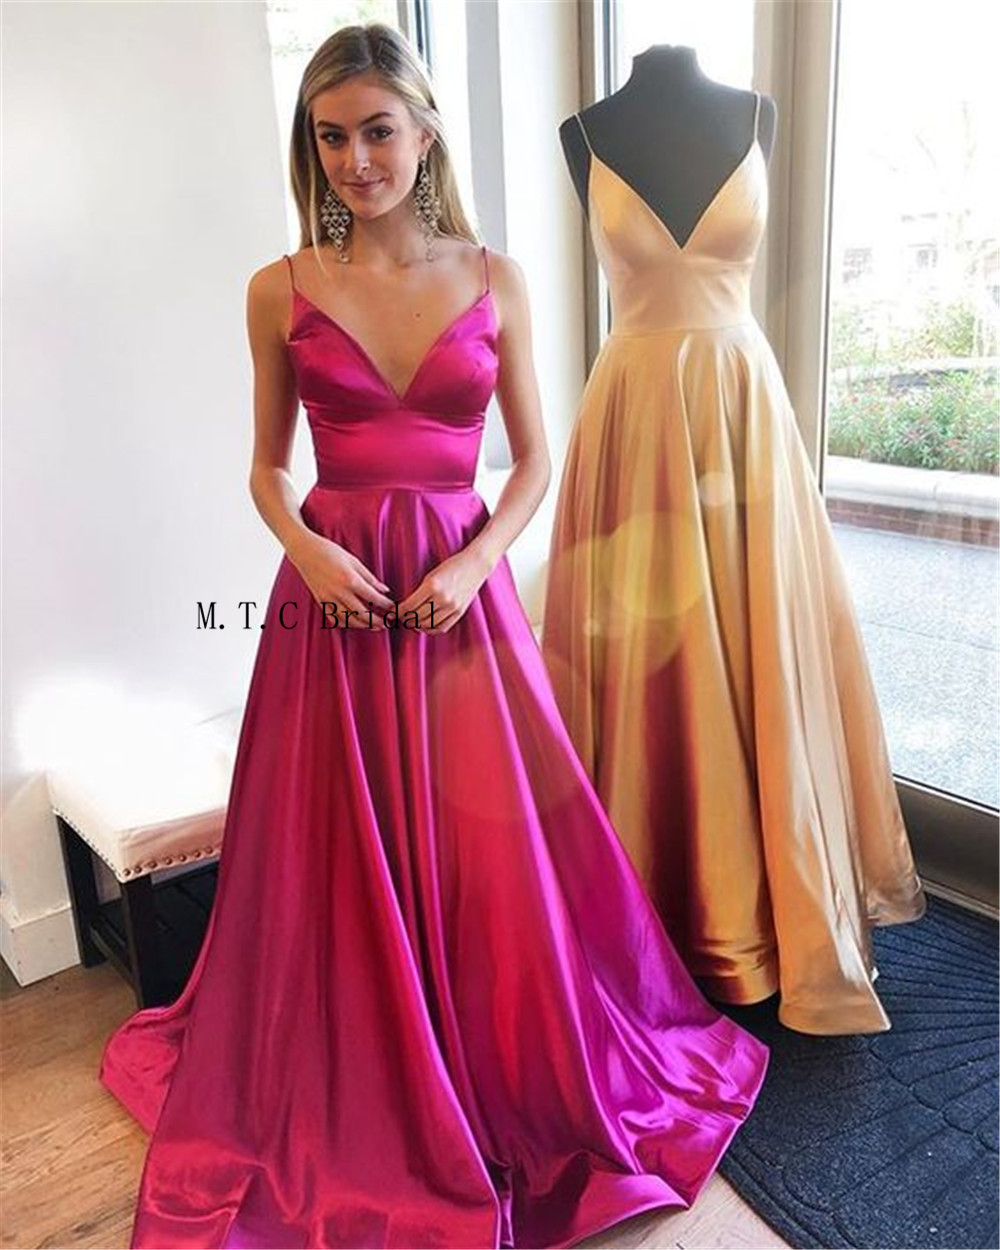 Sexy 2019 Long   Prom     Dresses   Spaghetti Strap A Line Floor Length Formal Occasion   Dress   Custom Made Evening Party   Dress   Cheap